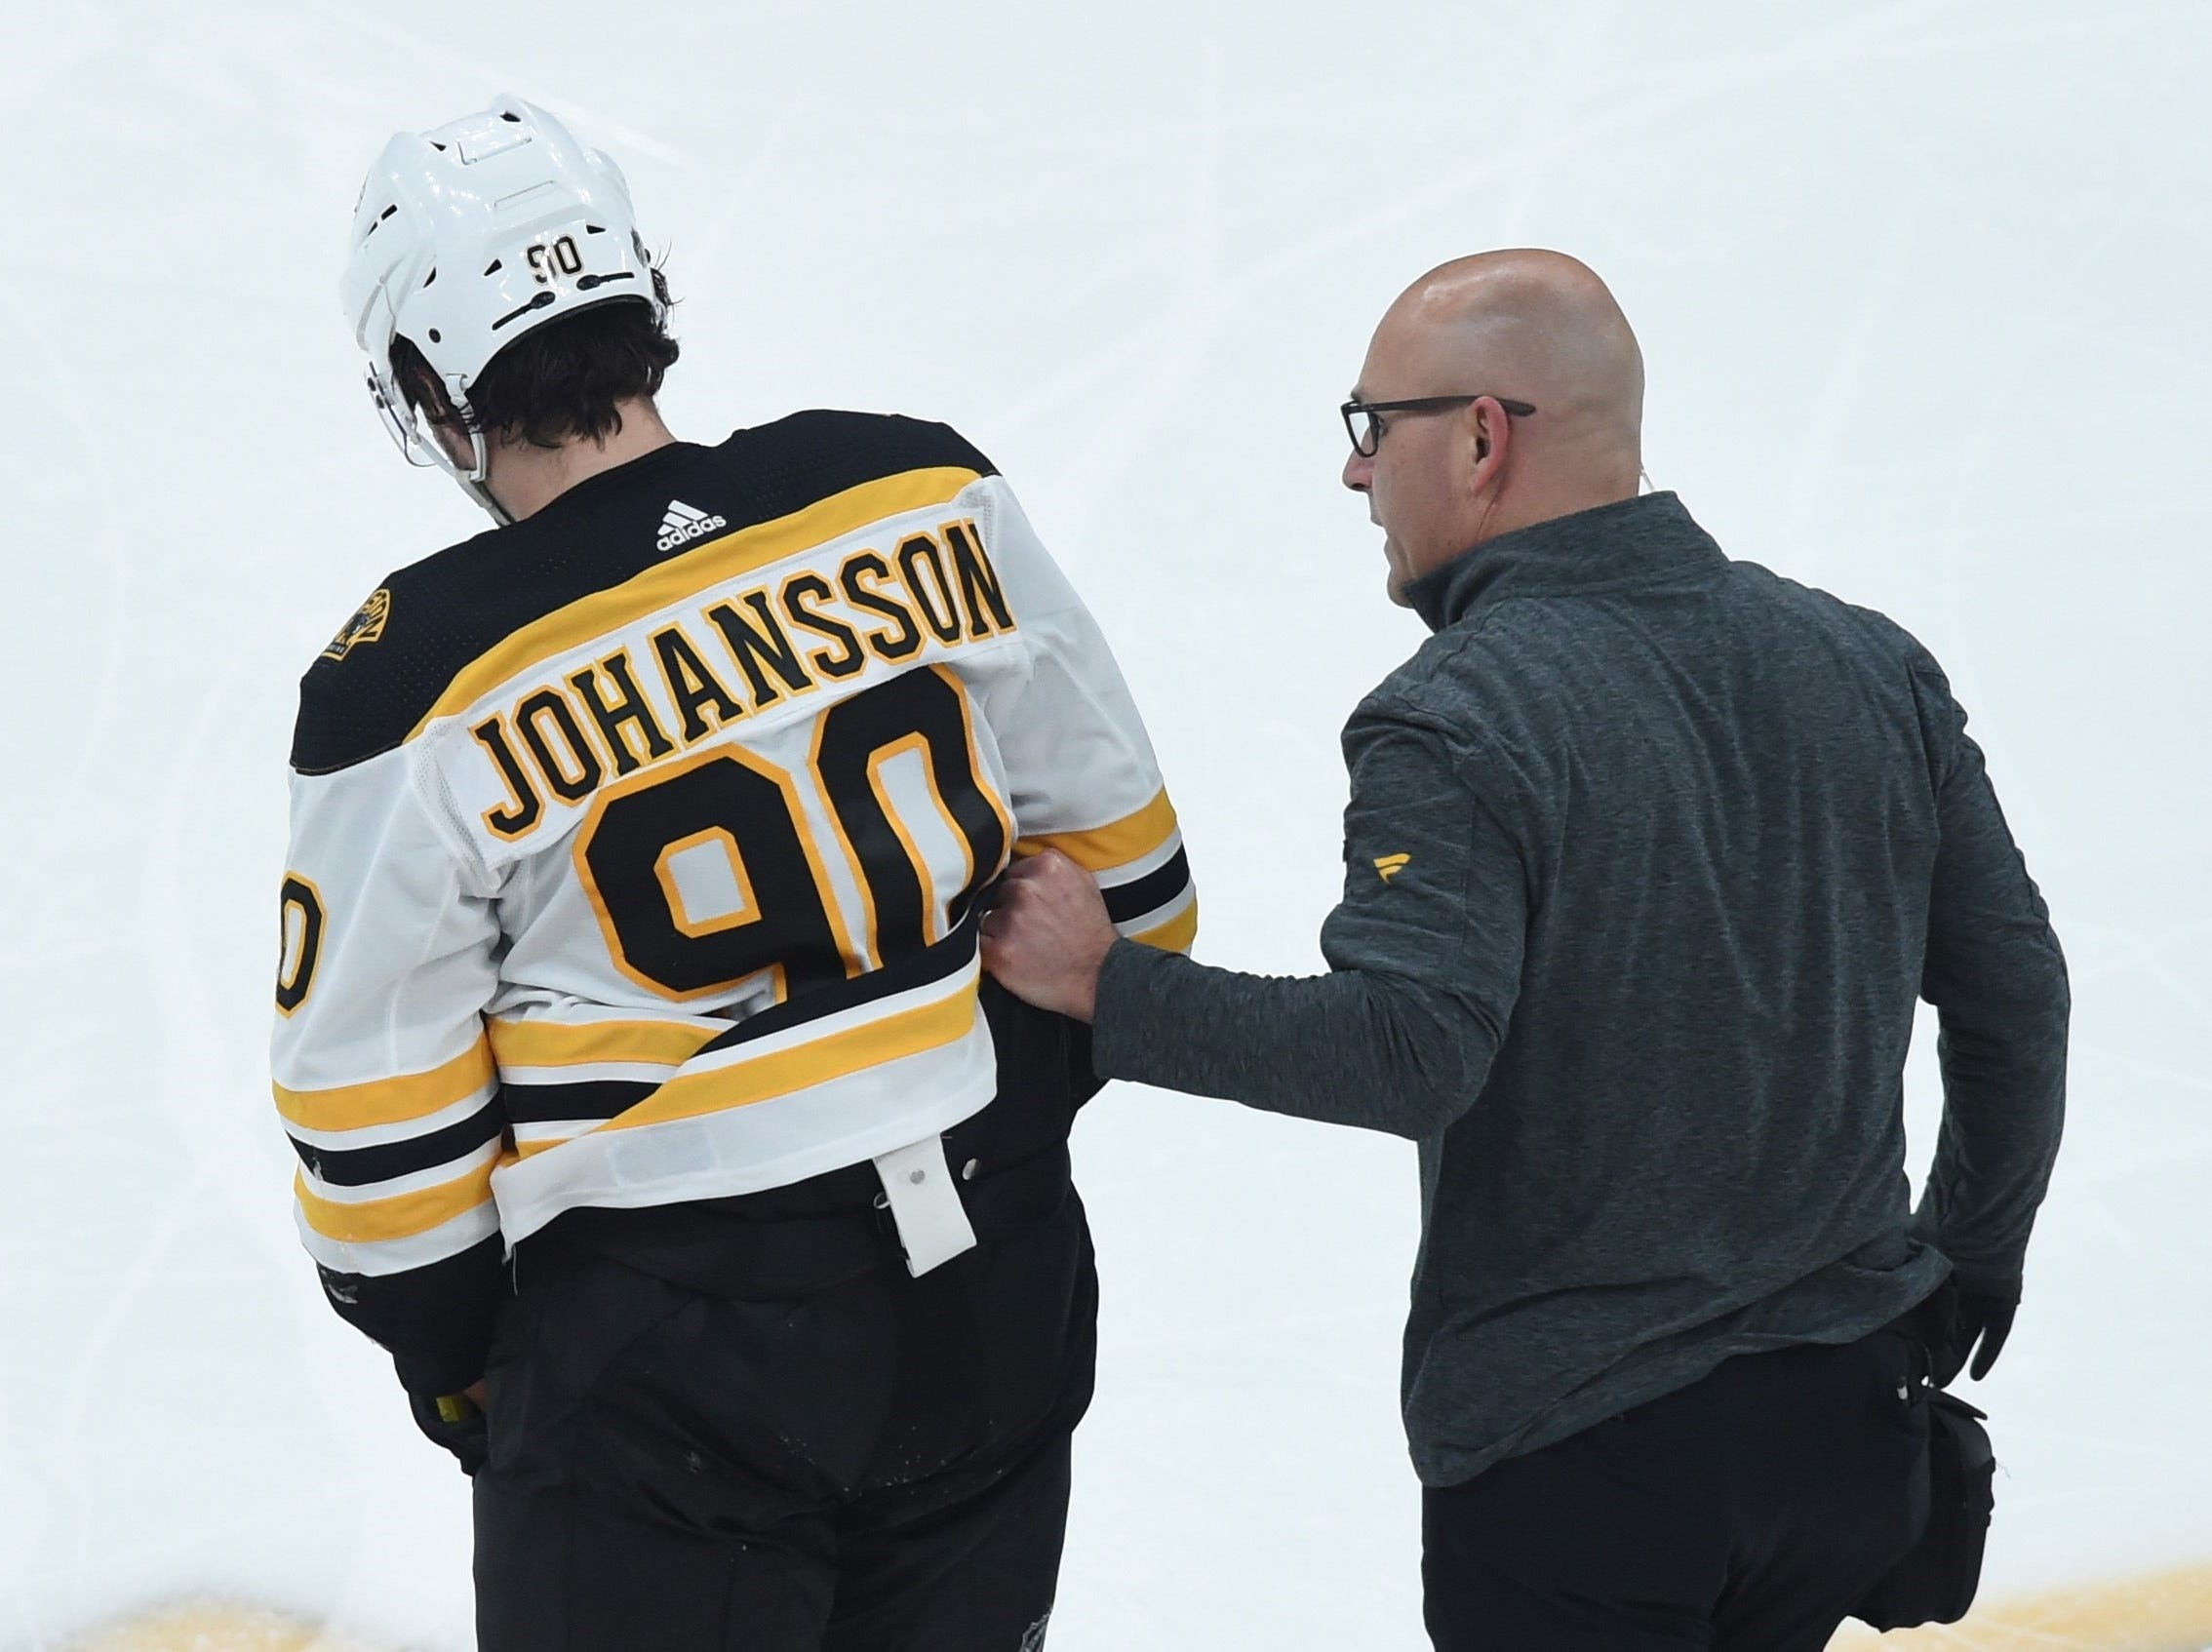 March 5: Boston Bruins left wing Marcus Johansson is helped off the ice after a major hit from the Carolina Hurricanes' Micheal Ferland. He went to the hospital for tests.